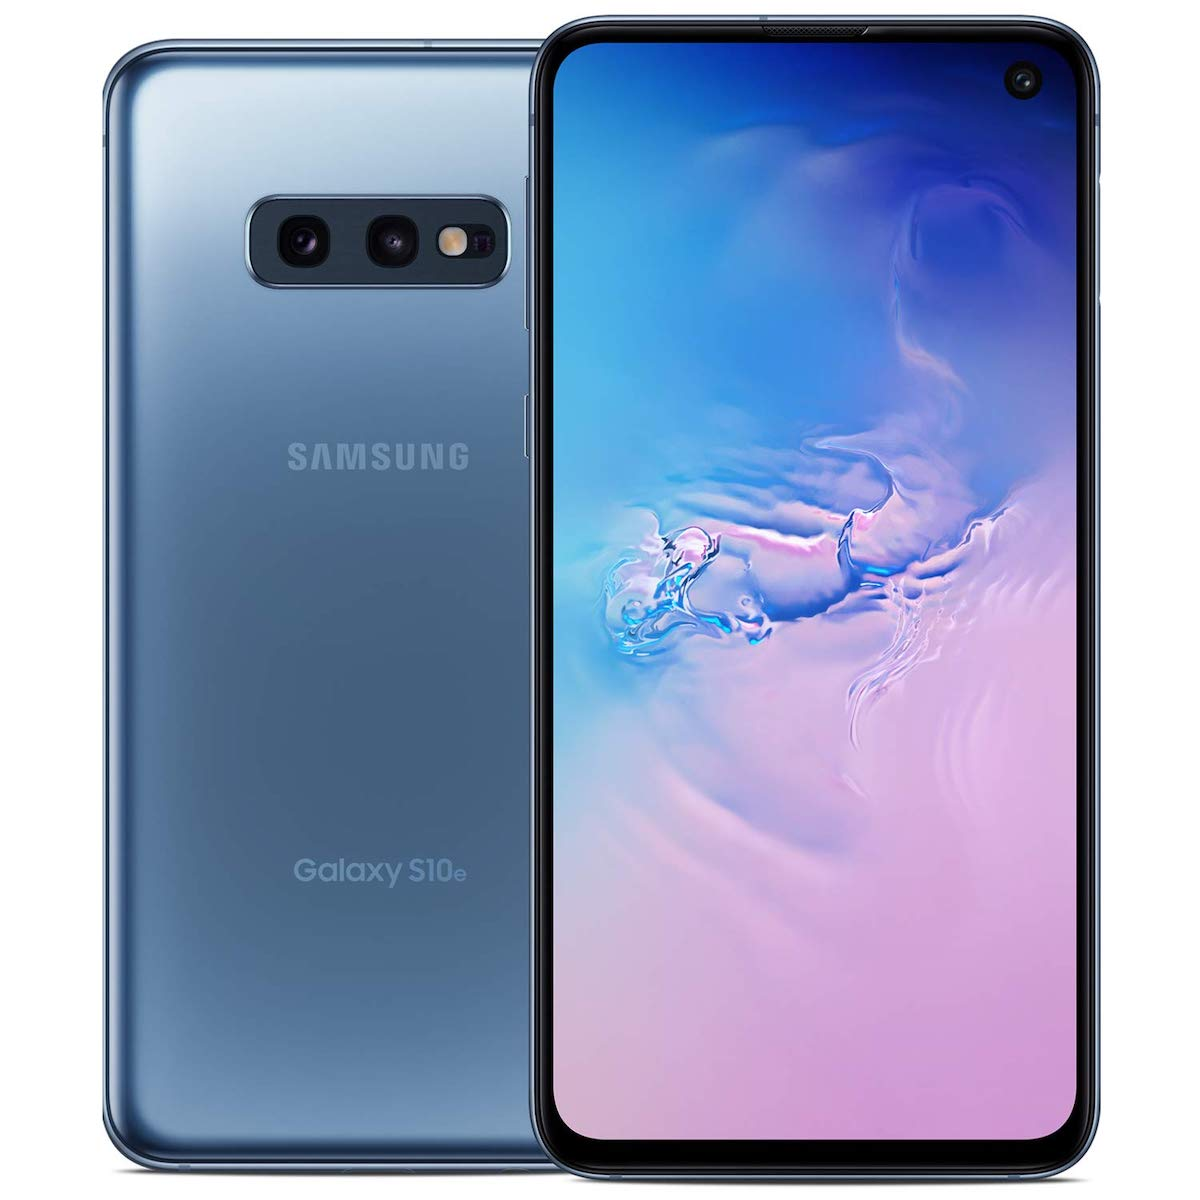 Samsung Galaxy S10e Model Number SM-G970* Differences - TechWalls